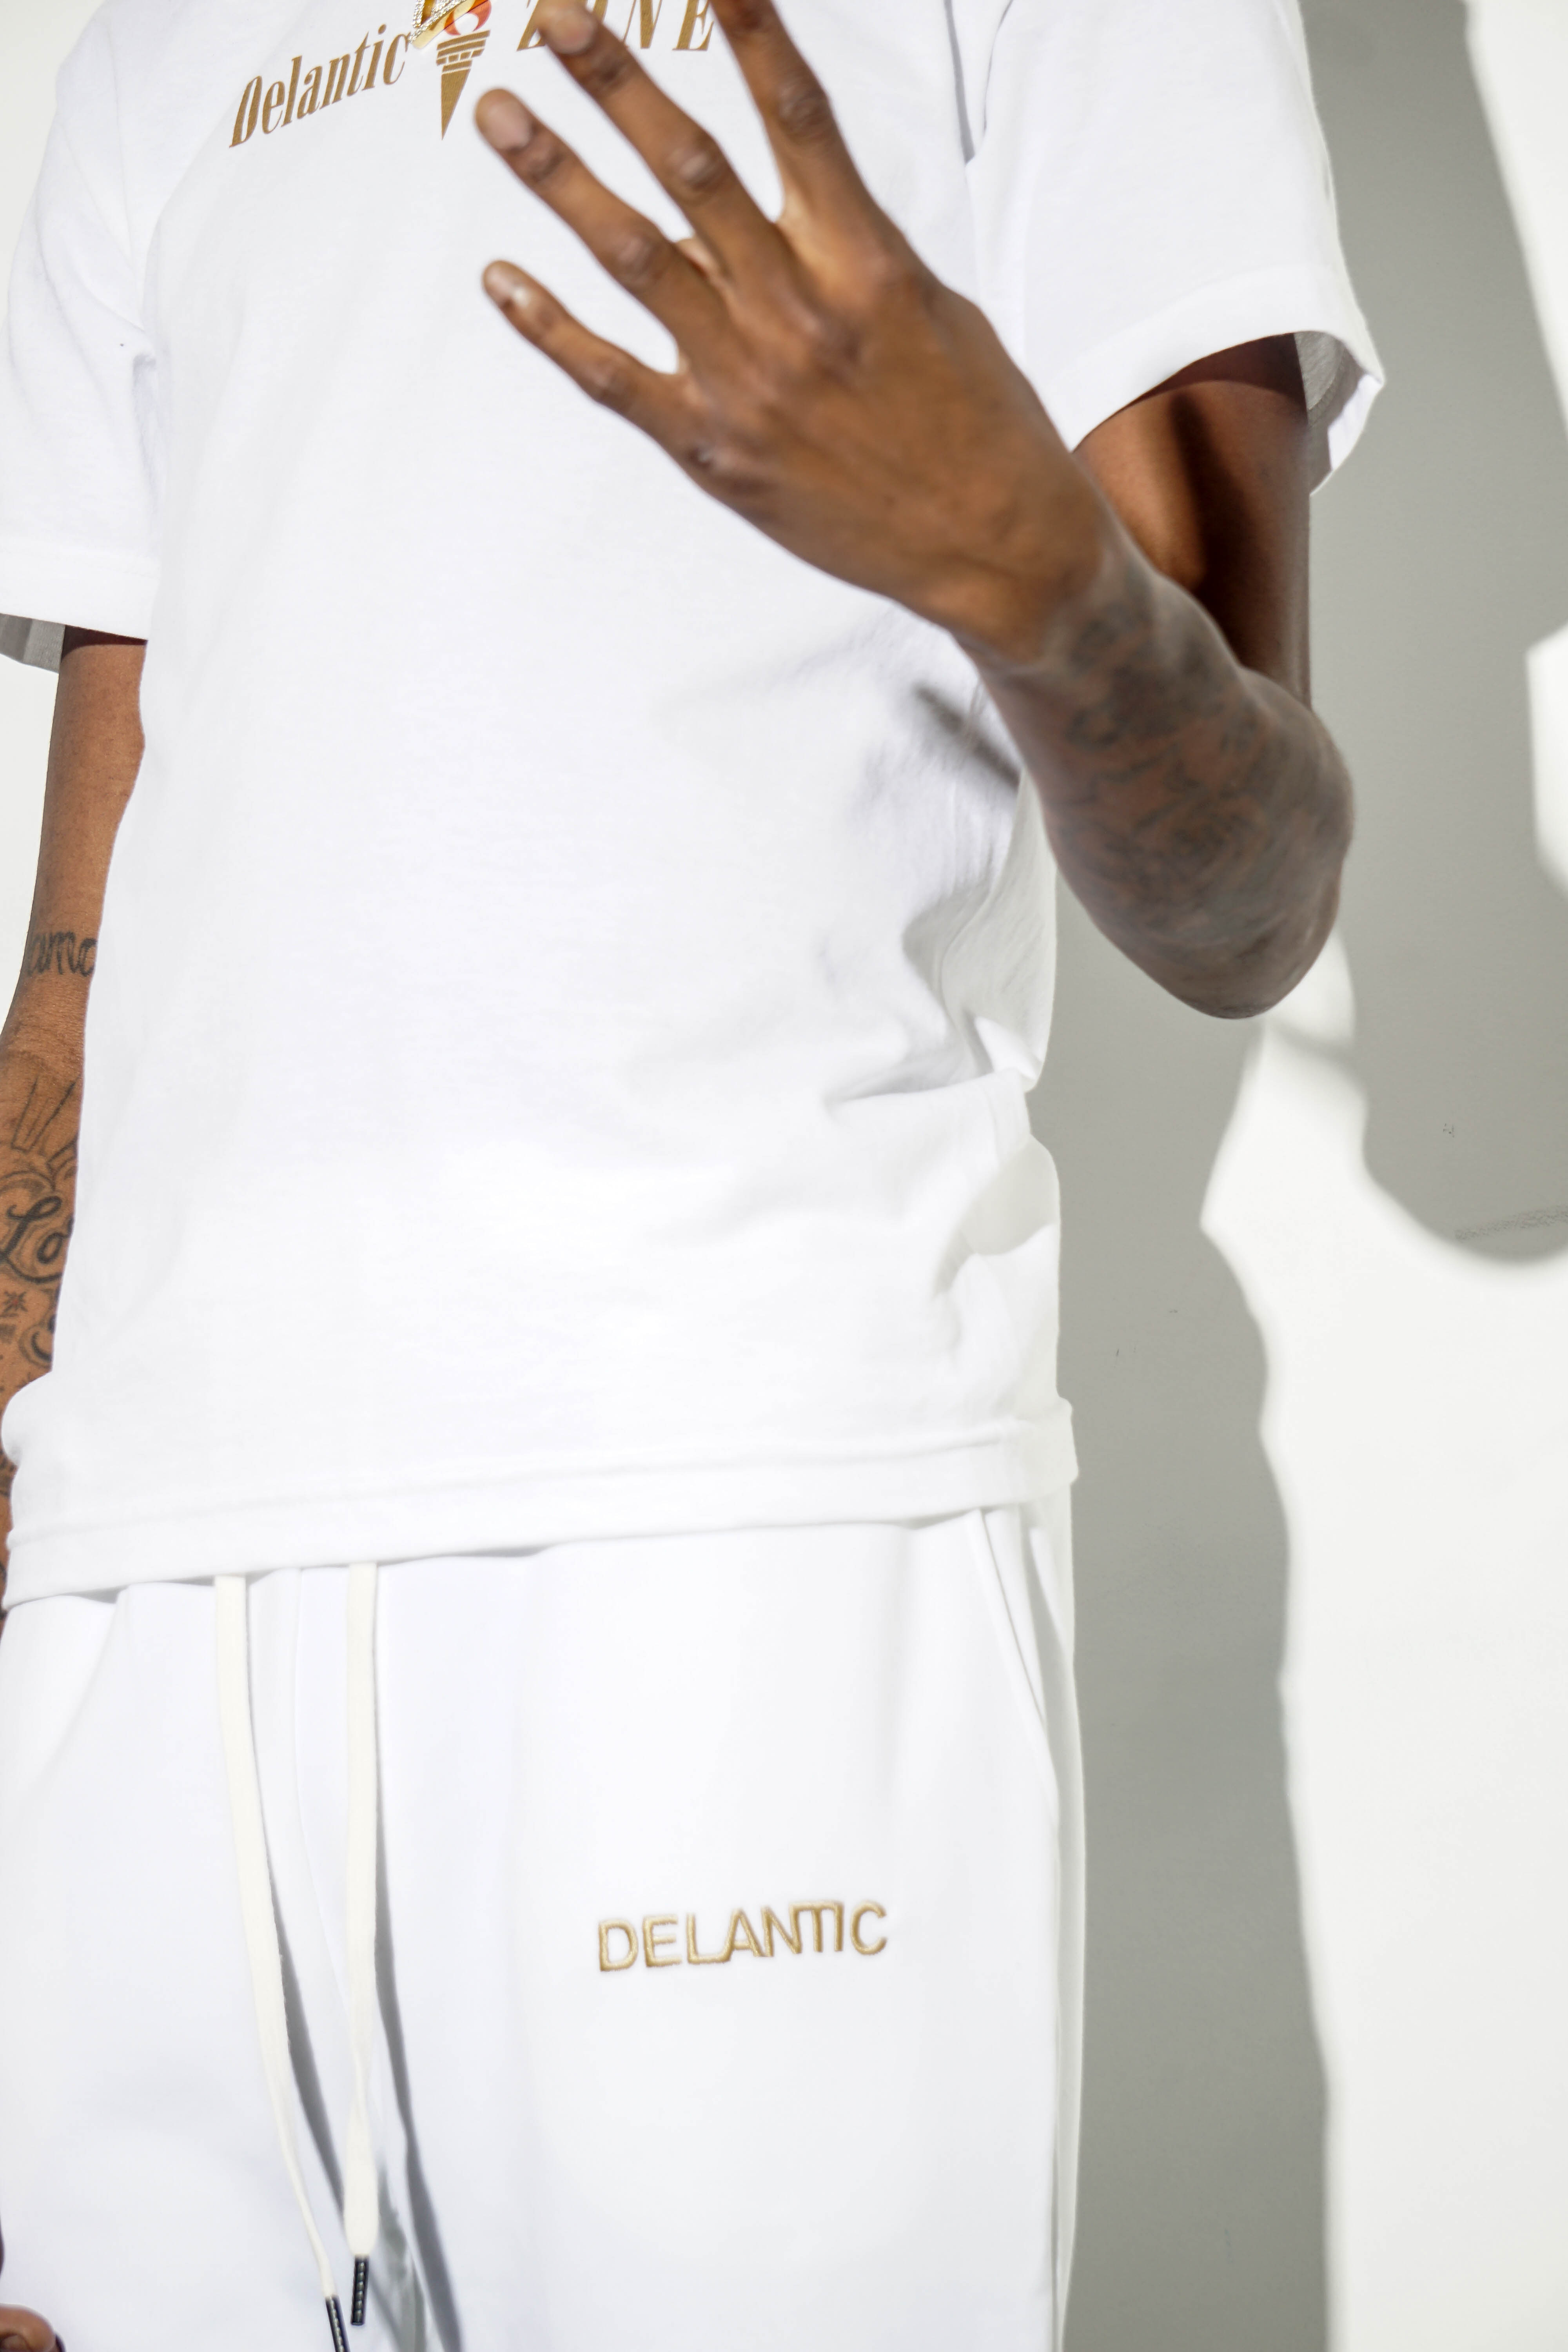 Gucci Mane Delantic Drop